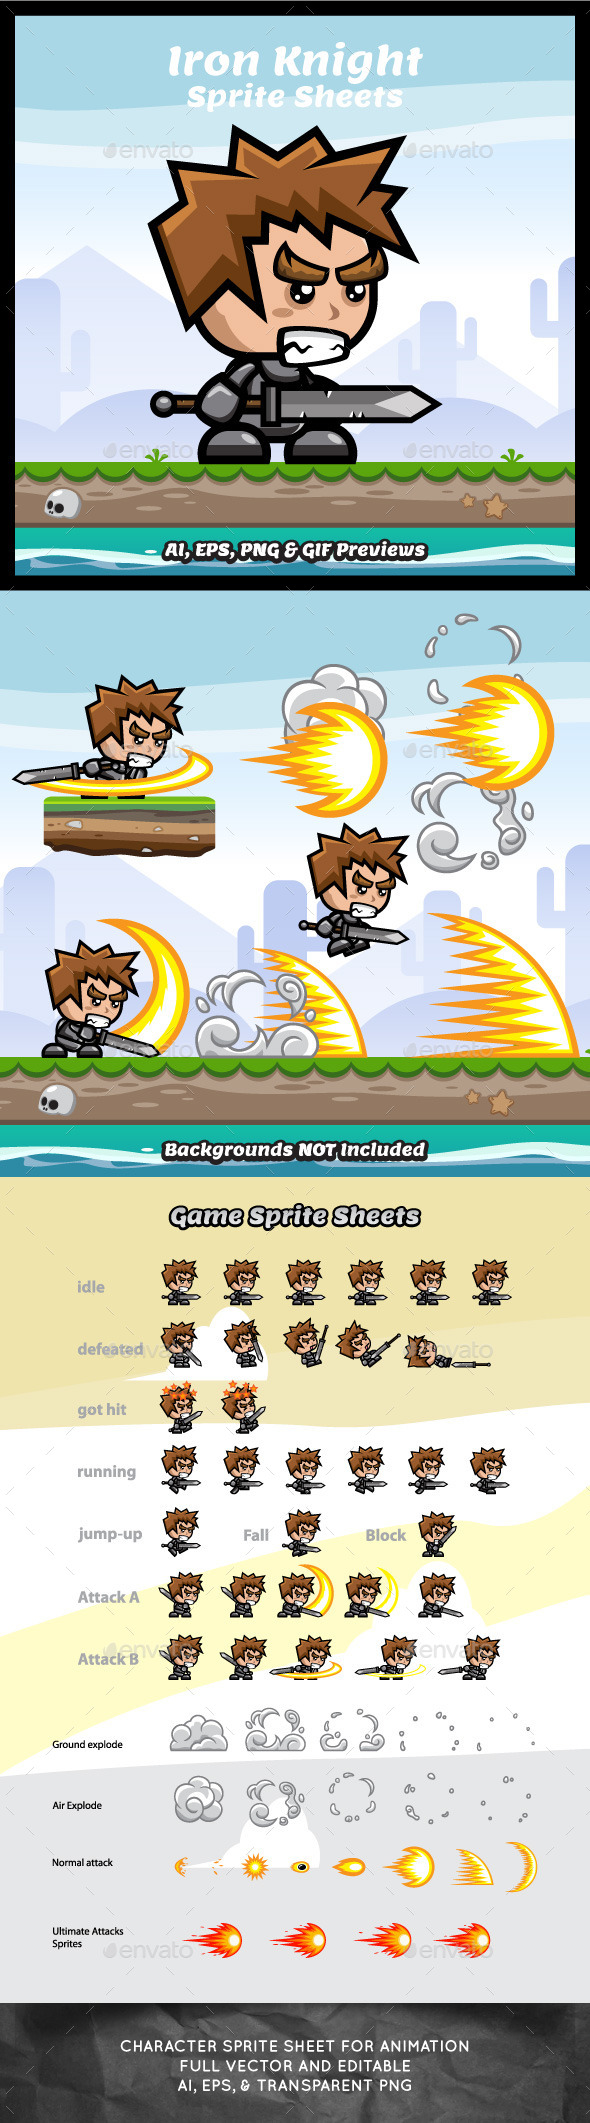 Iron Knight Game Character Sprite Sheets - Sprites Game Assets